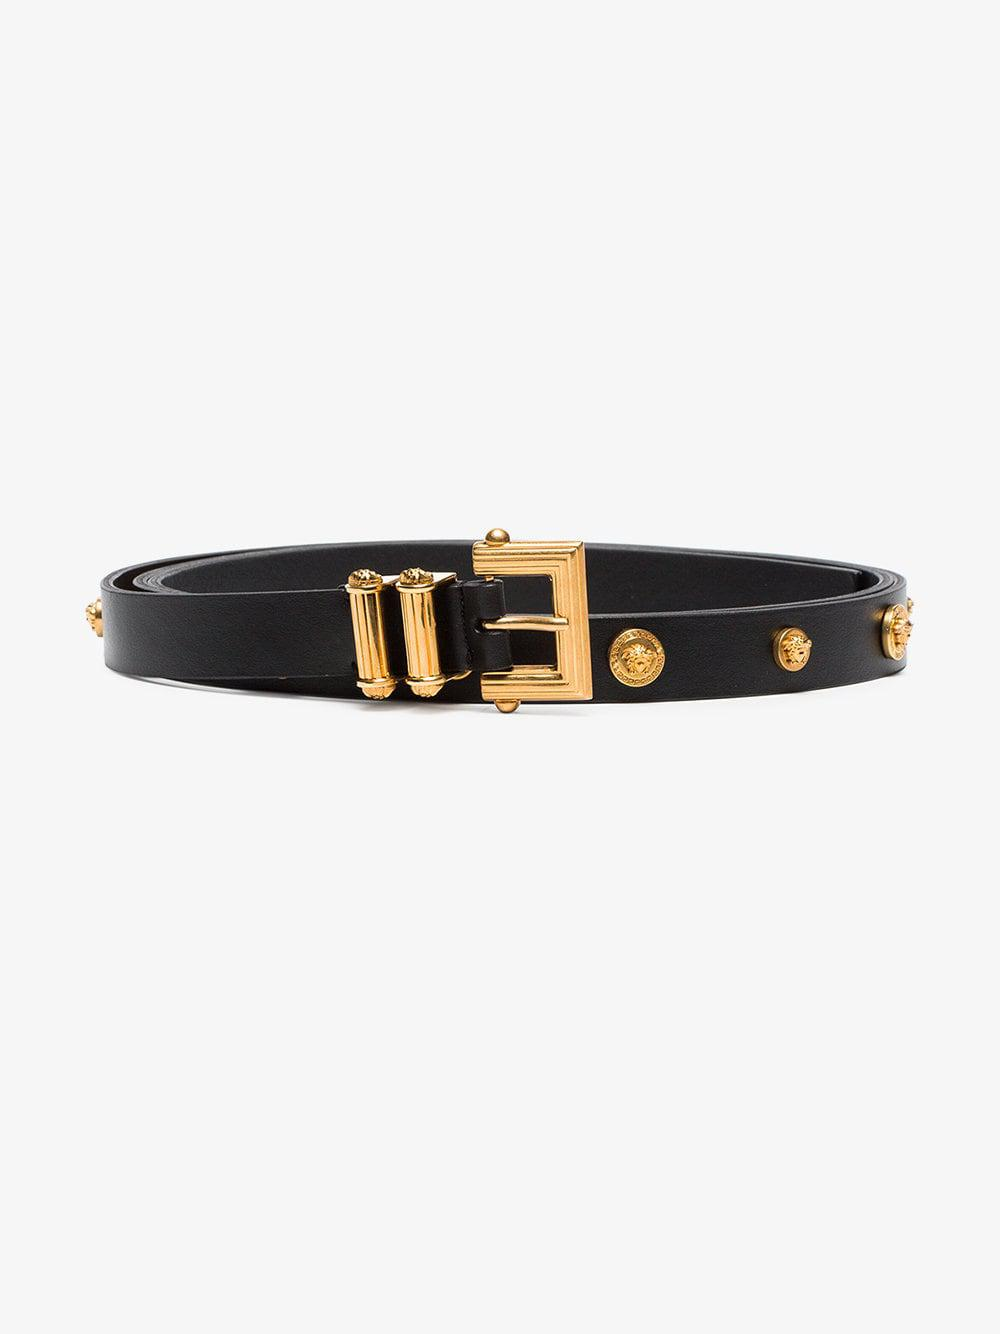 b86a2f652d Versace Black Square Buckle Tribute Leather Belt in Black - Lyst